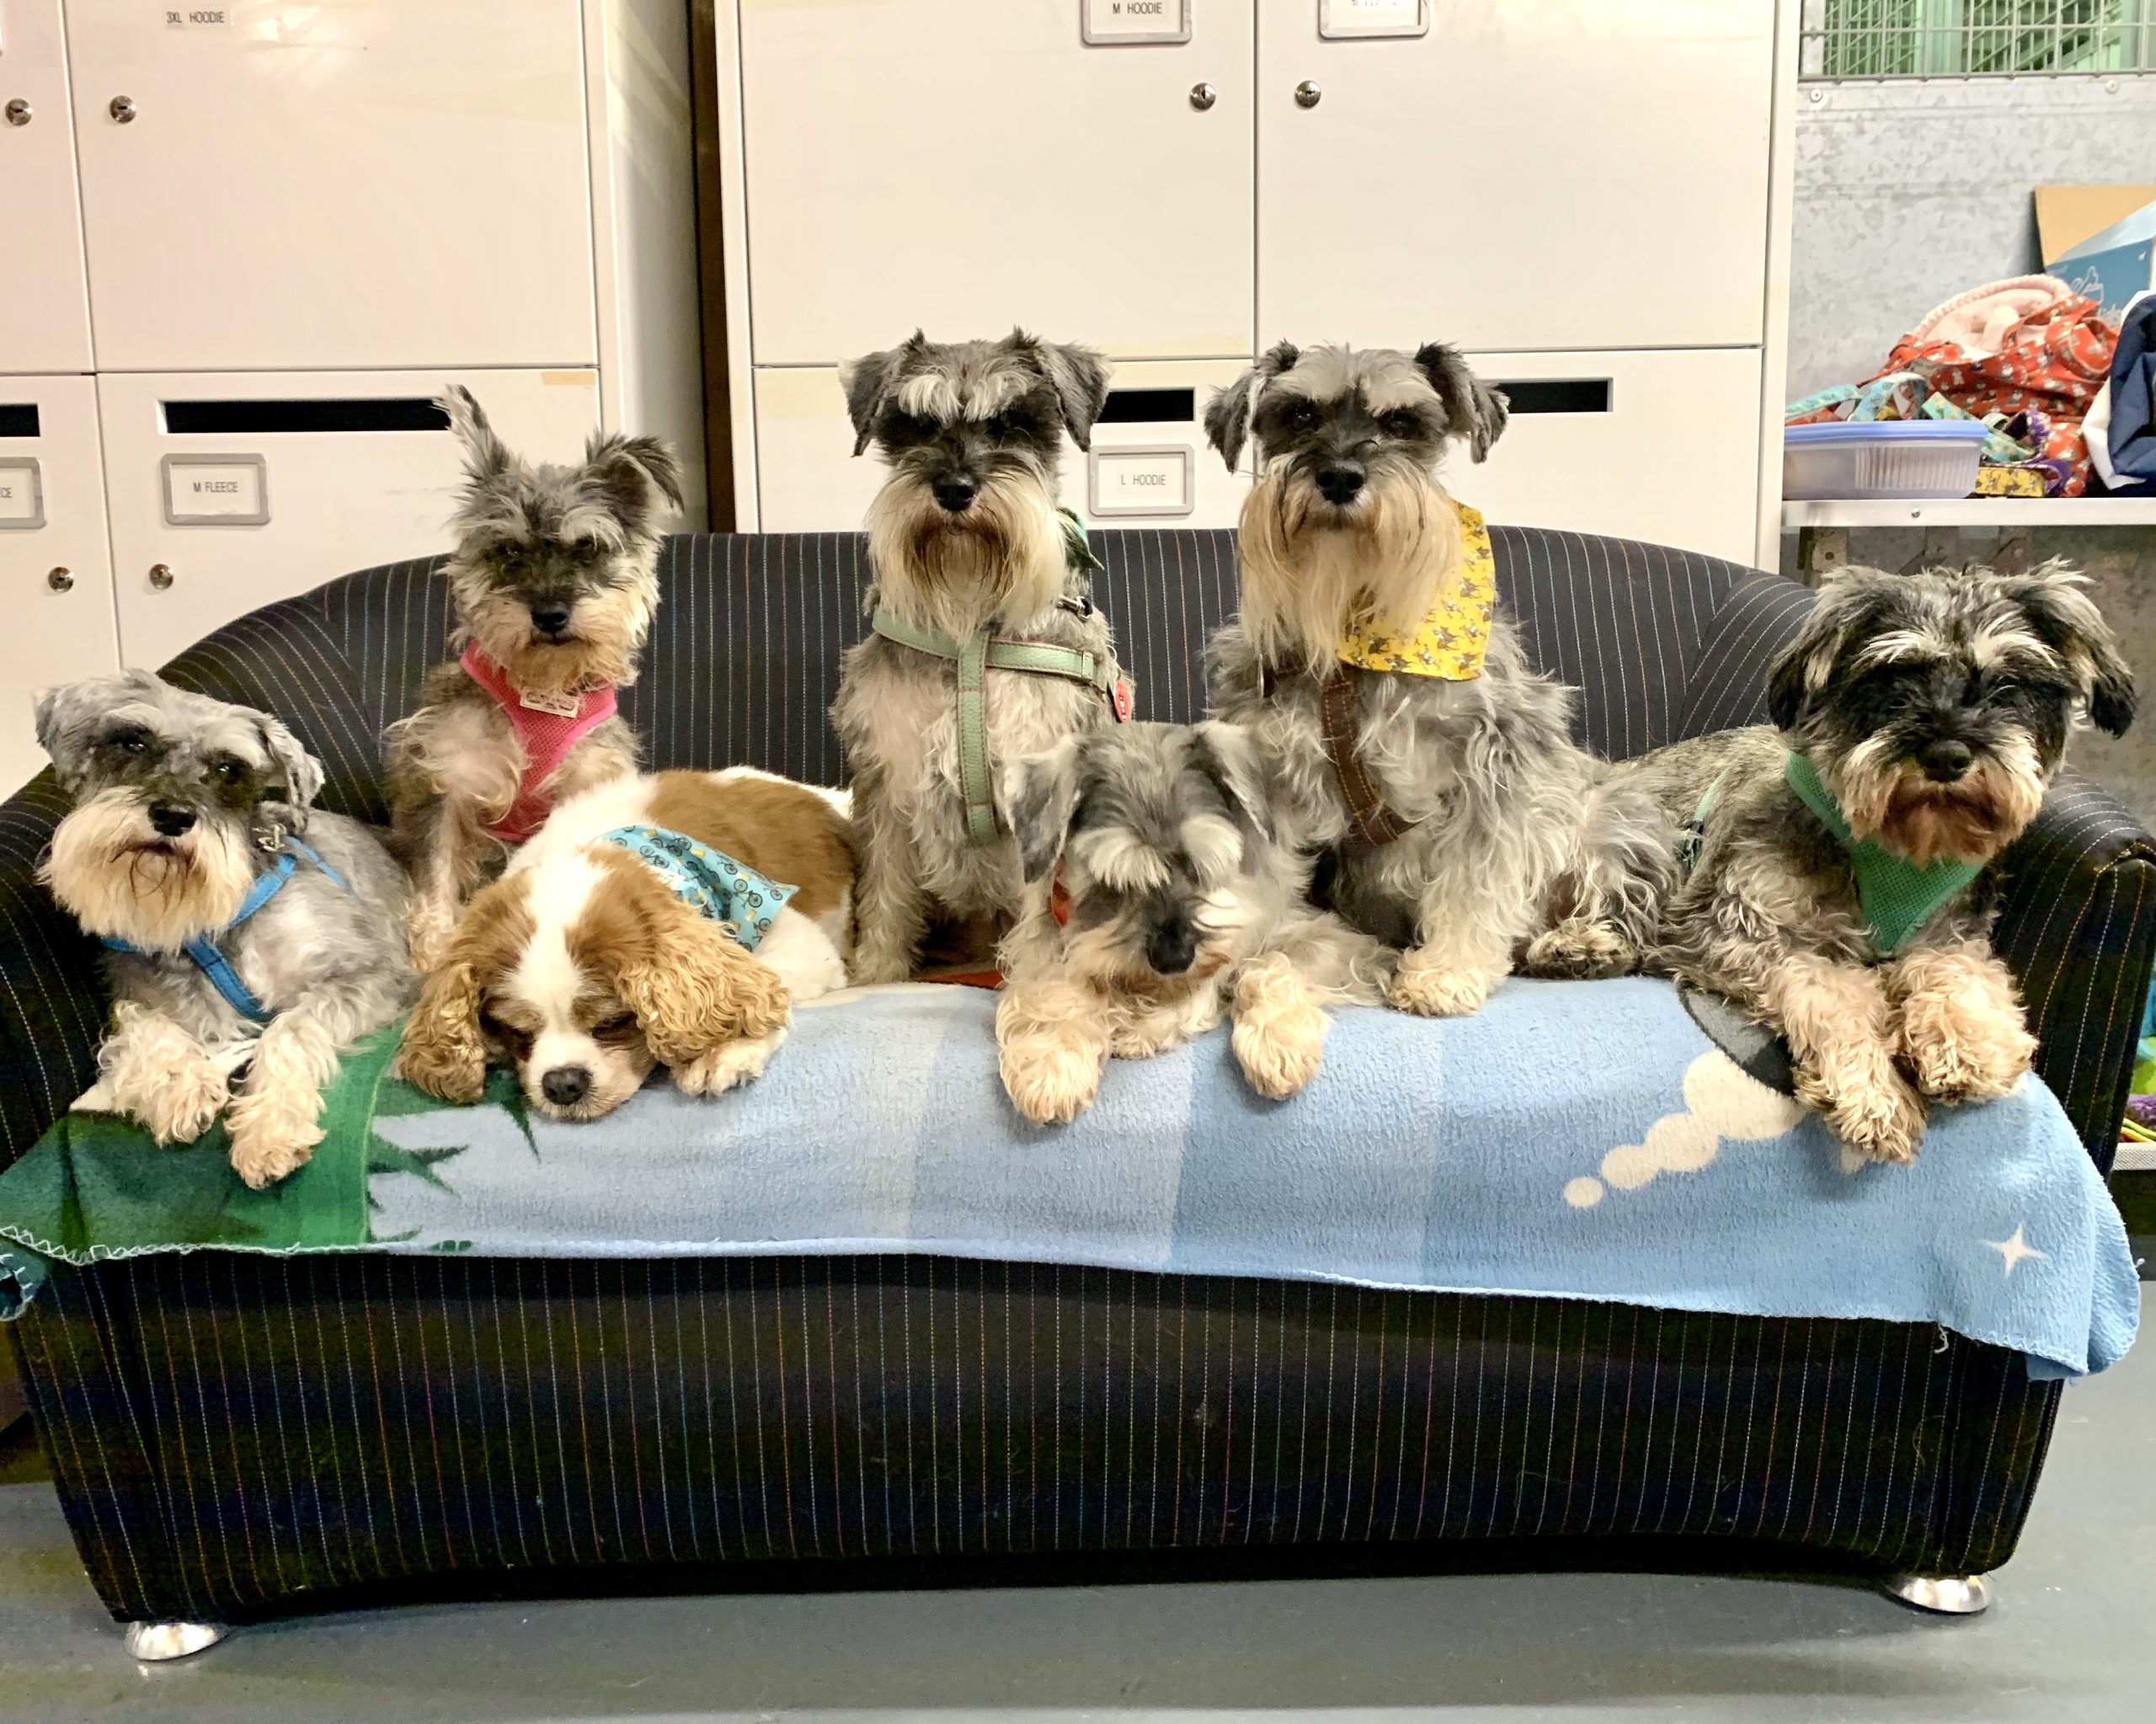 Sofa surfing with schnauzers